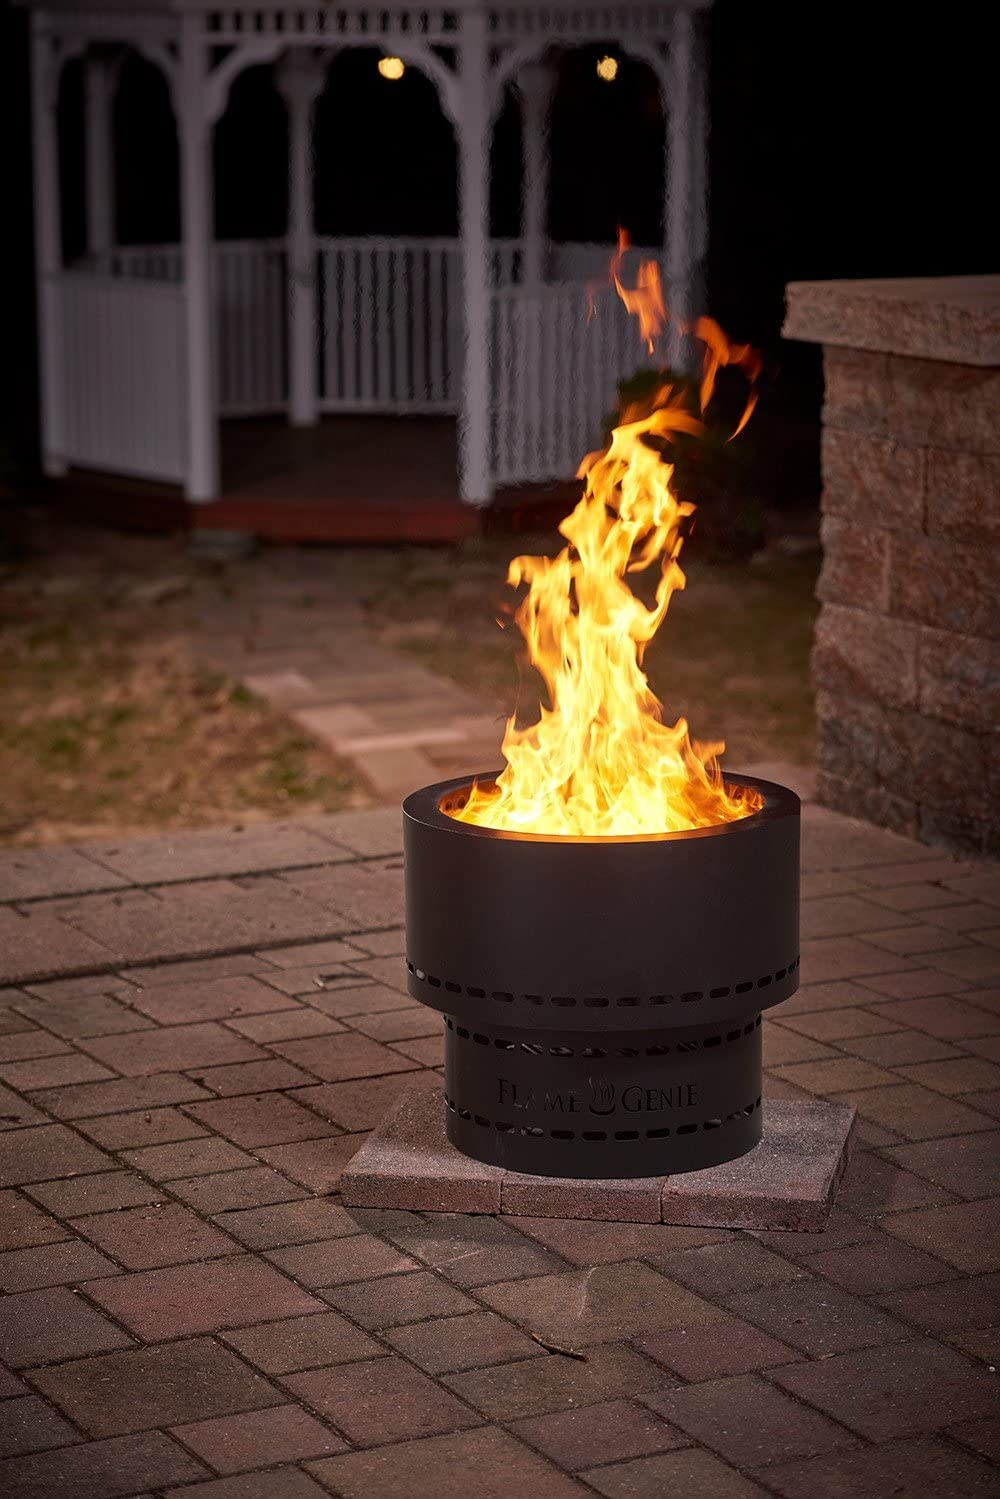 Flame Genie Wood Pellet Fire Pit Amazon Co Uk Kitchen Home